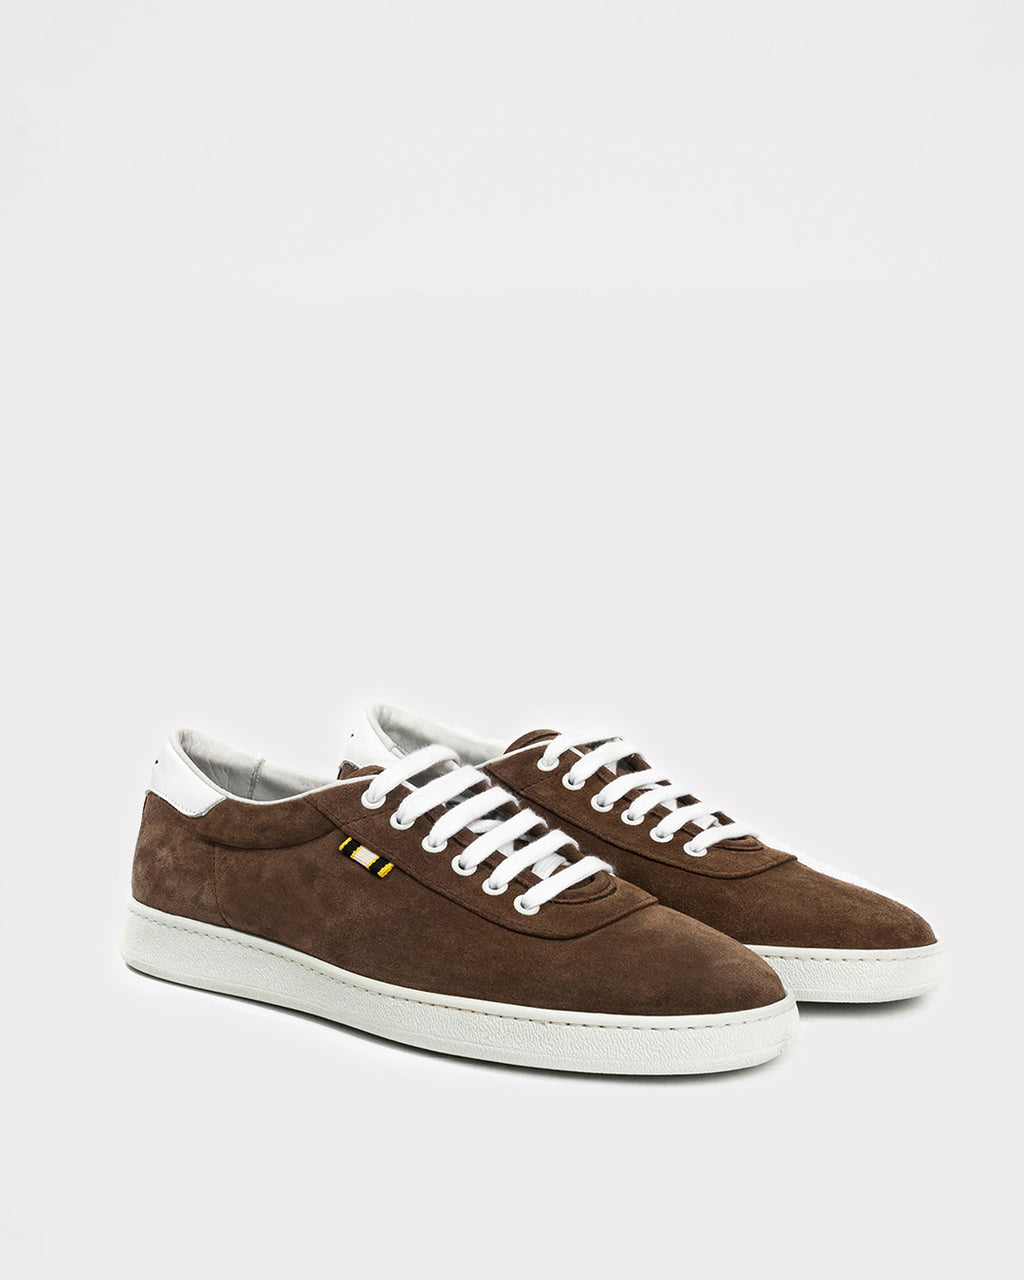 APR002 - Suede - Brown